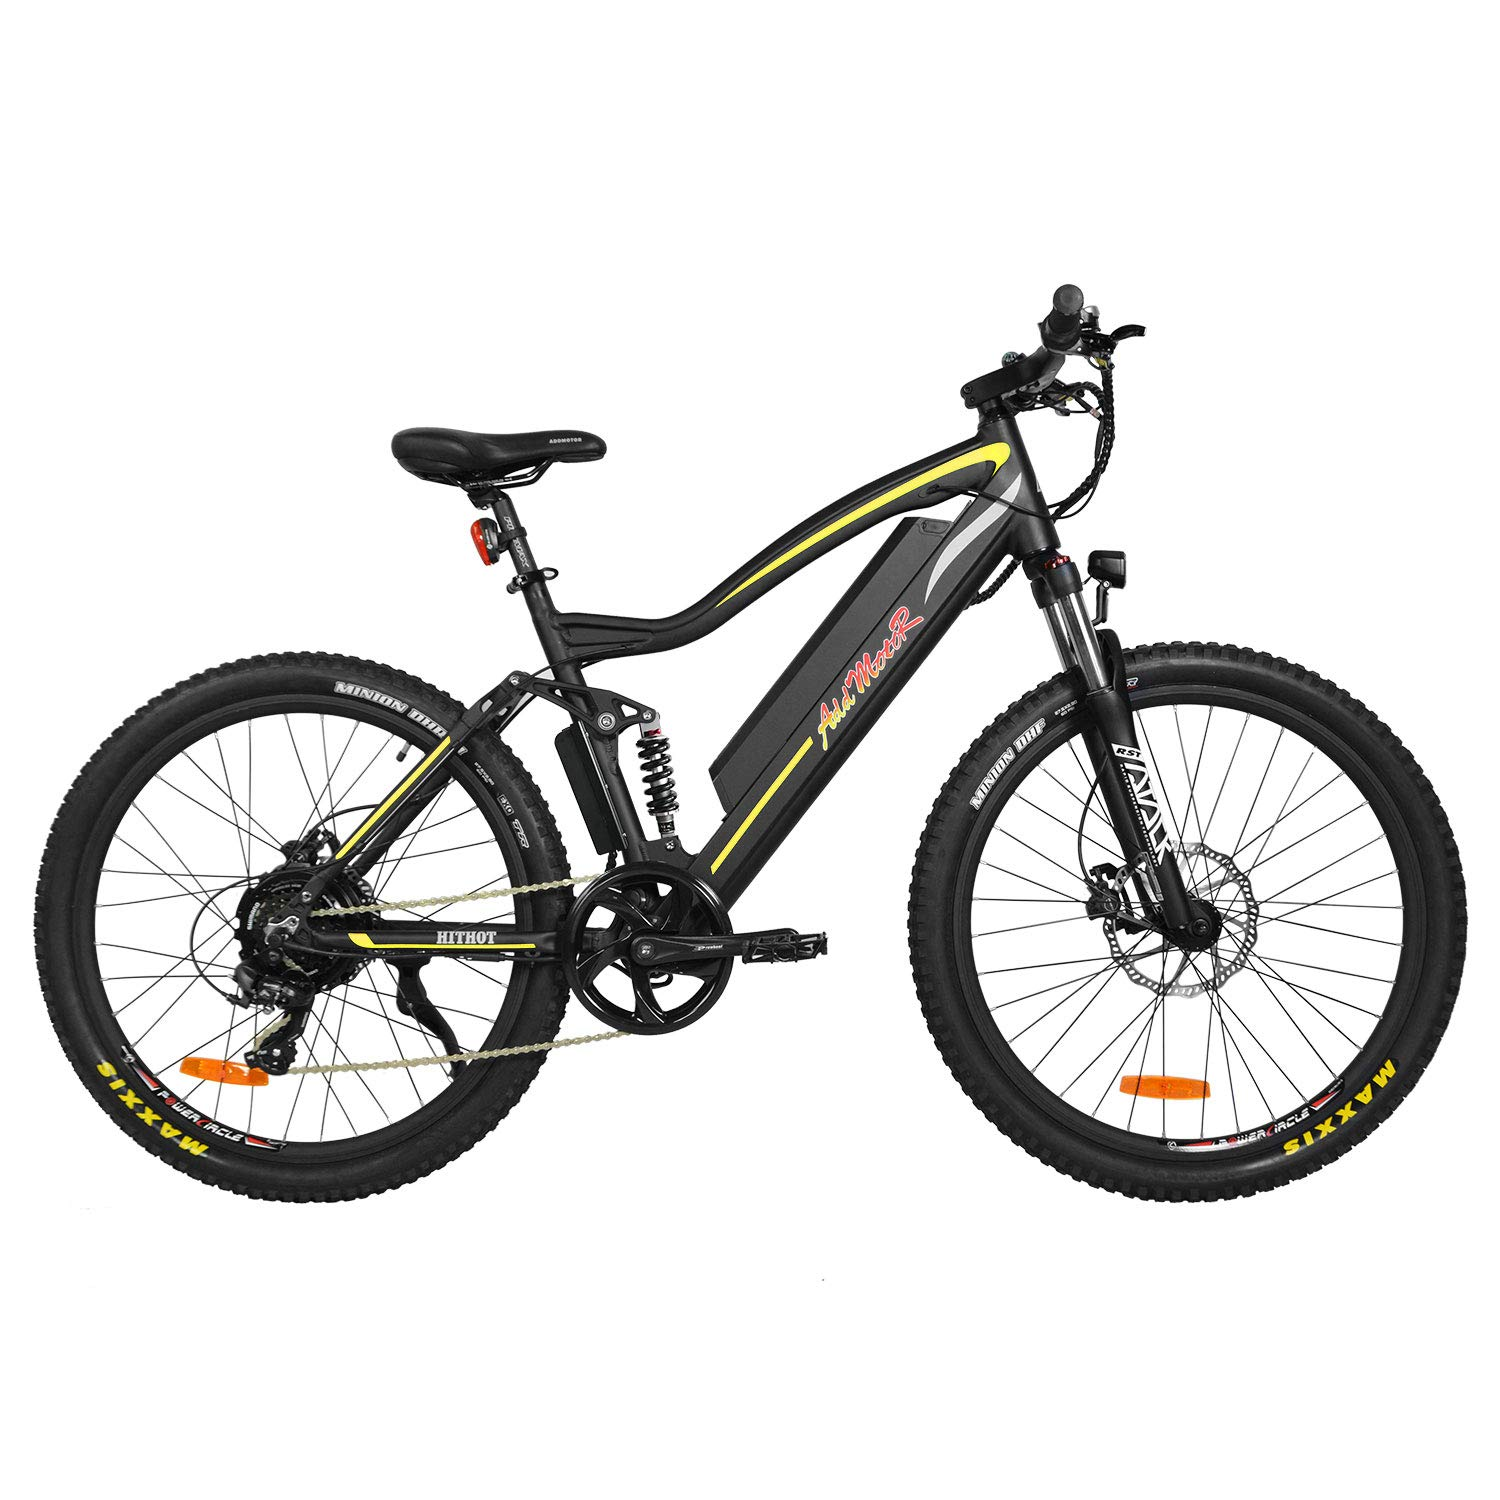 Addmotor Electric Bike Adult Electric Mountain Bike, 500W 27.5'' Electric Bicycle All Terrain, Adult Ebike with Removable 48V11.6AH Lithium-Ion Battery for Mens, 7 Speed Shifter, HITHOT H1-P E-Bike